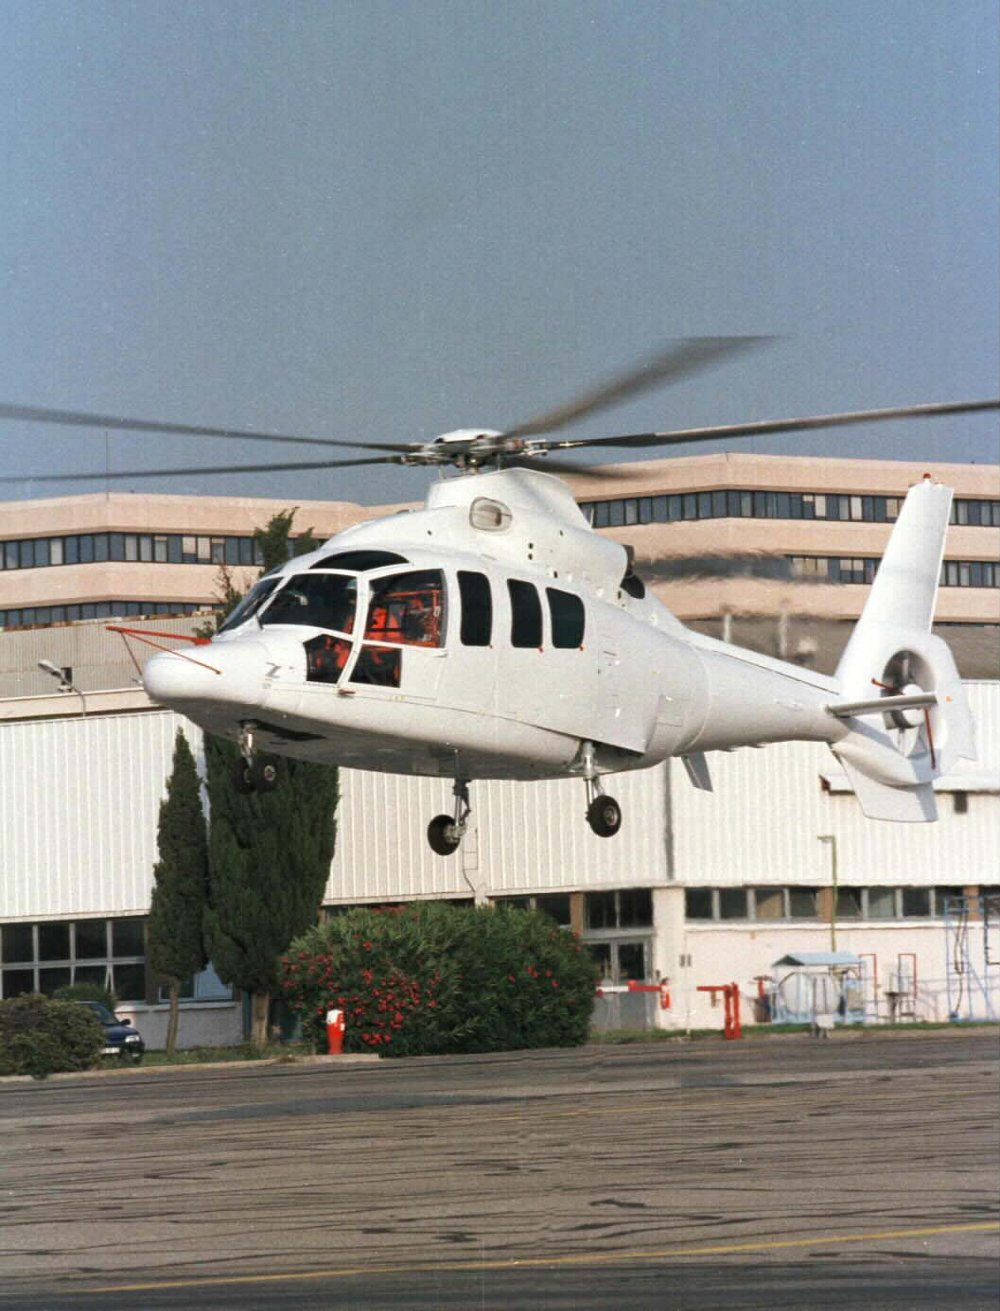 The EC155 helicopter's maiden flight was performed in 1997.